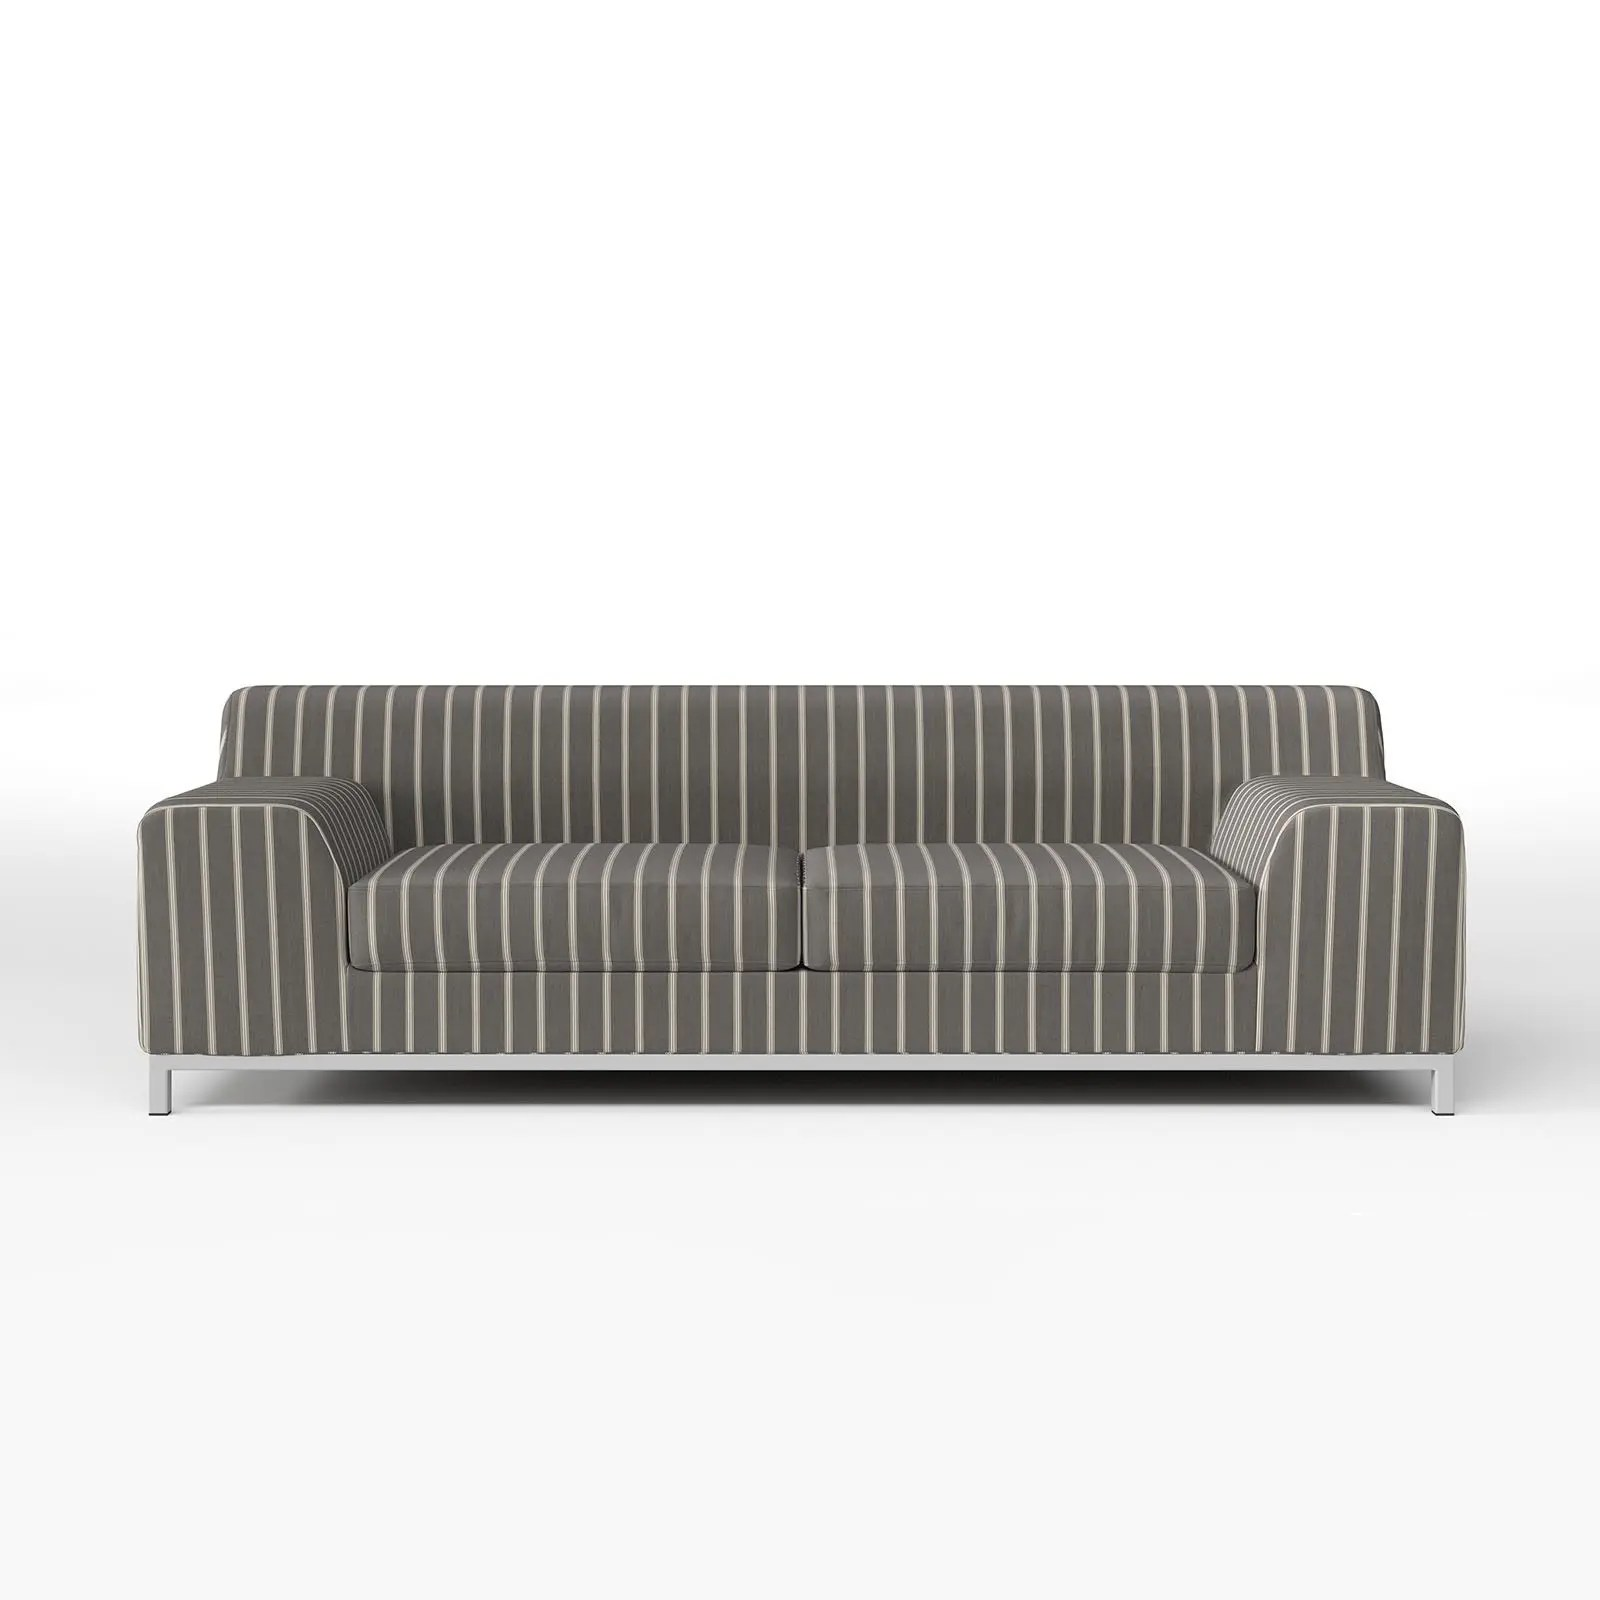 Ledersofa Ikea Kramfors Ikea Kramfors Discontinued But Comfort Works Has Got You Covered